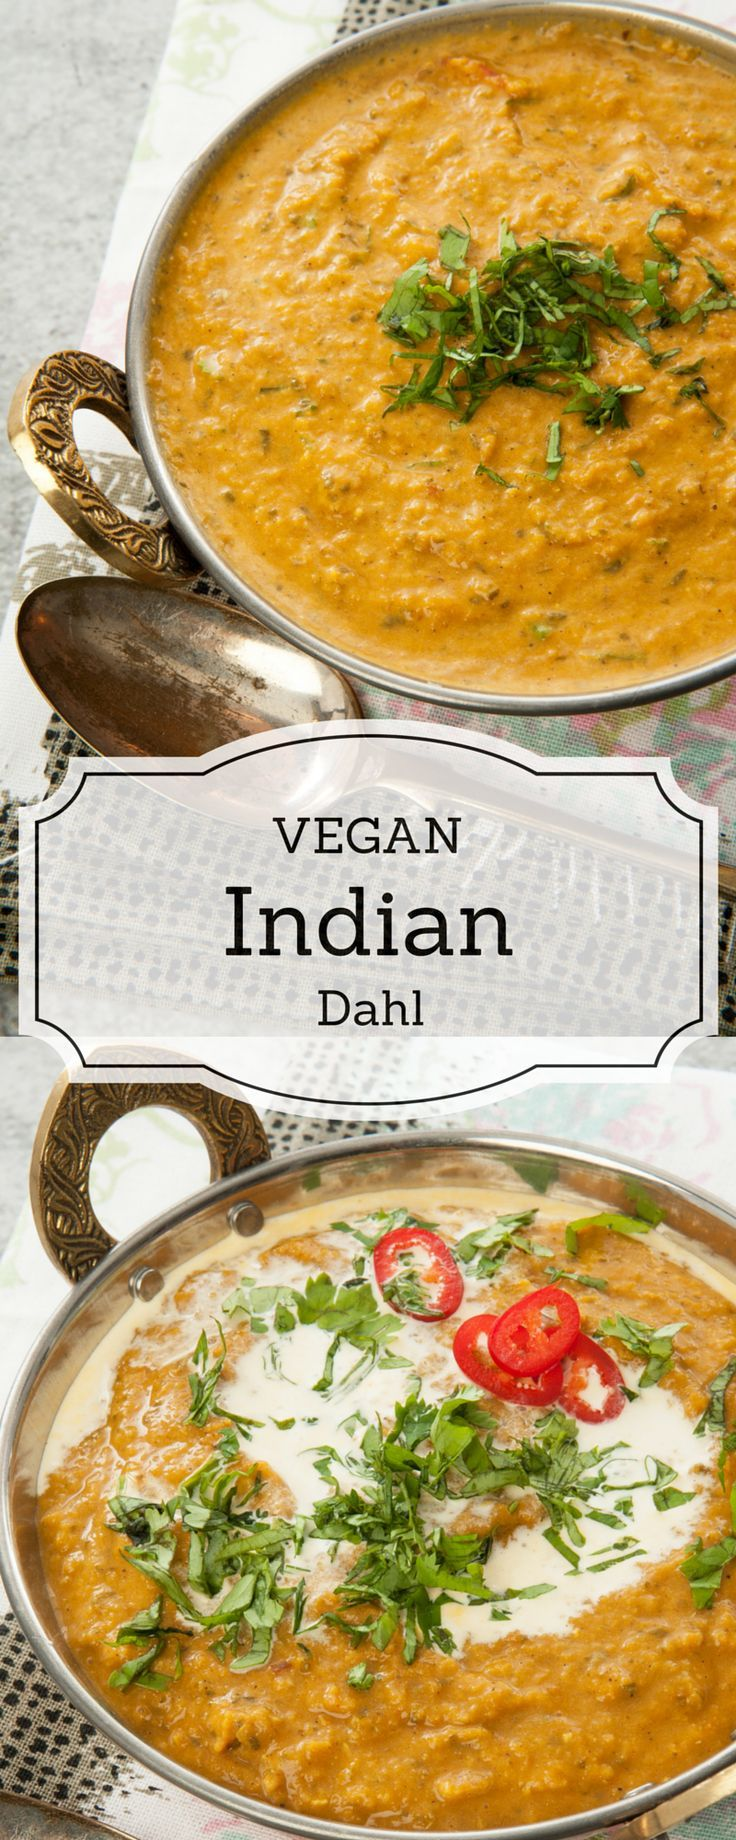 Vegan Indian Dahl – Tasty Comfort Food